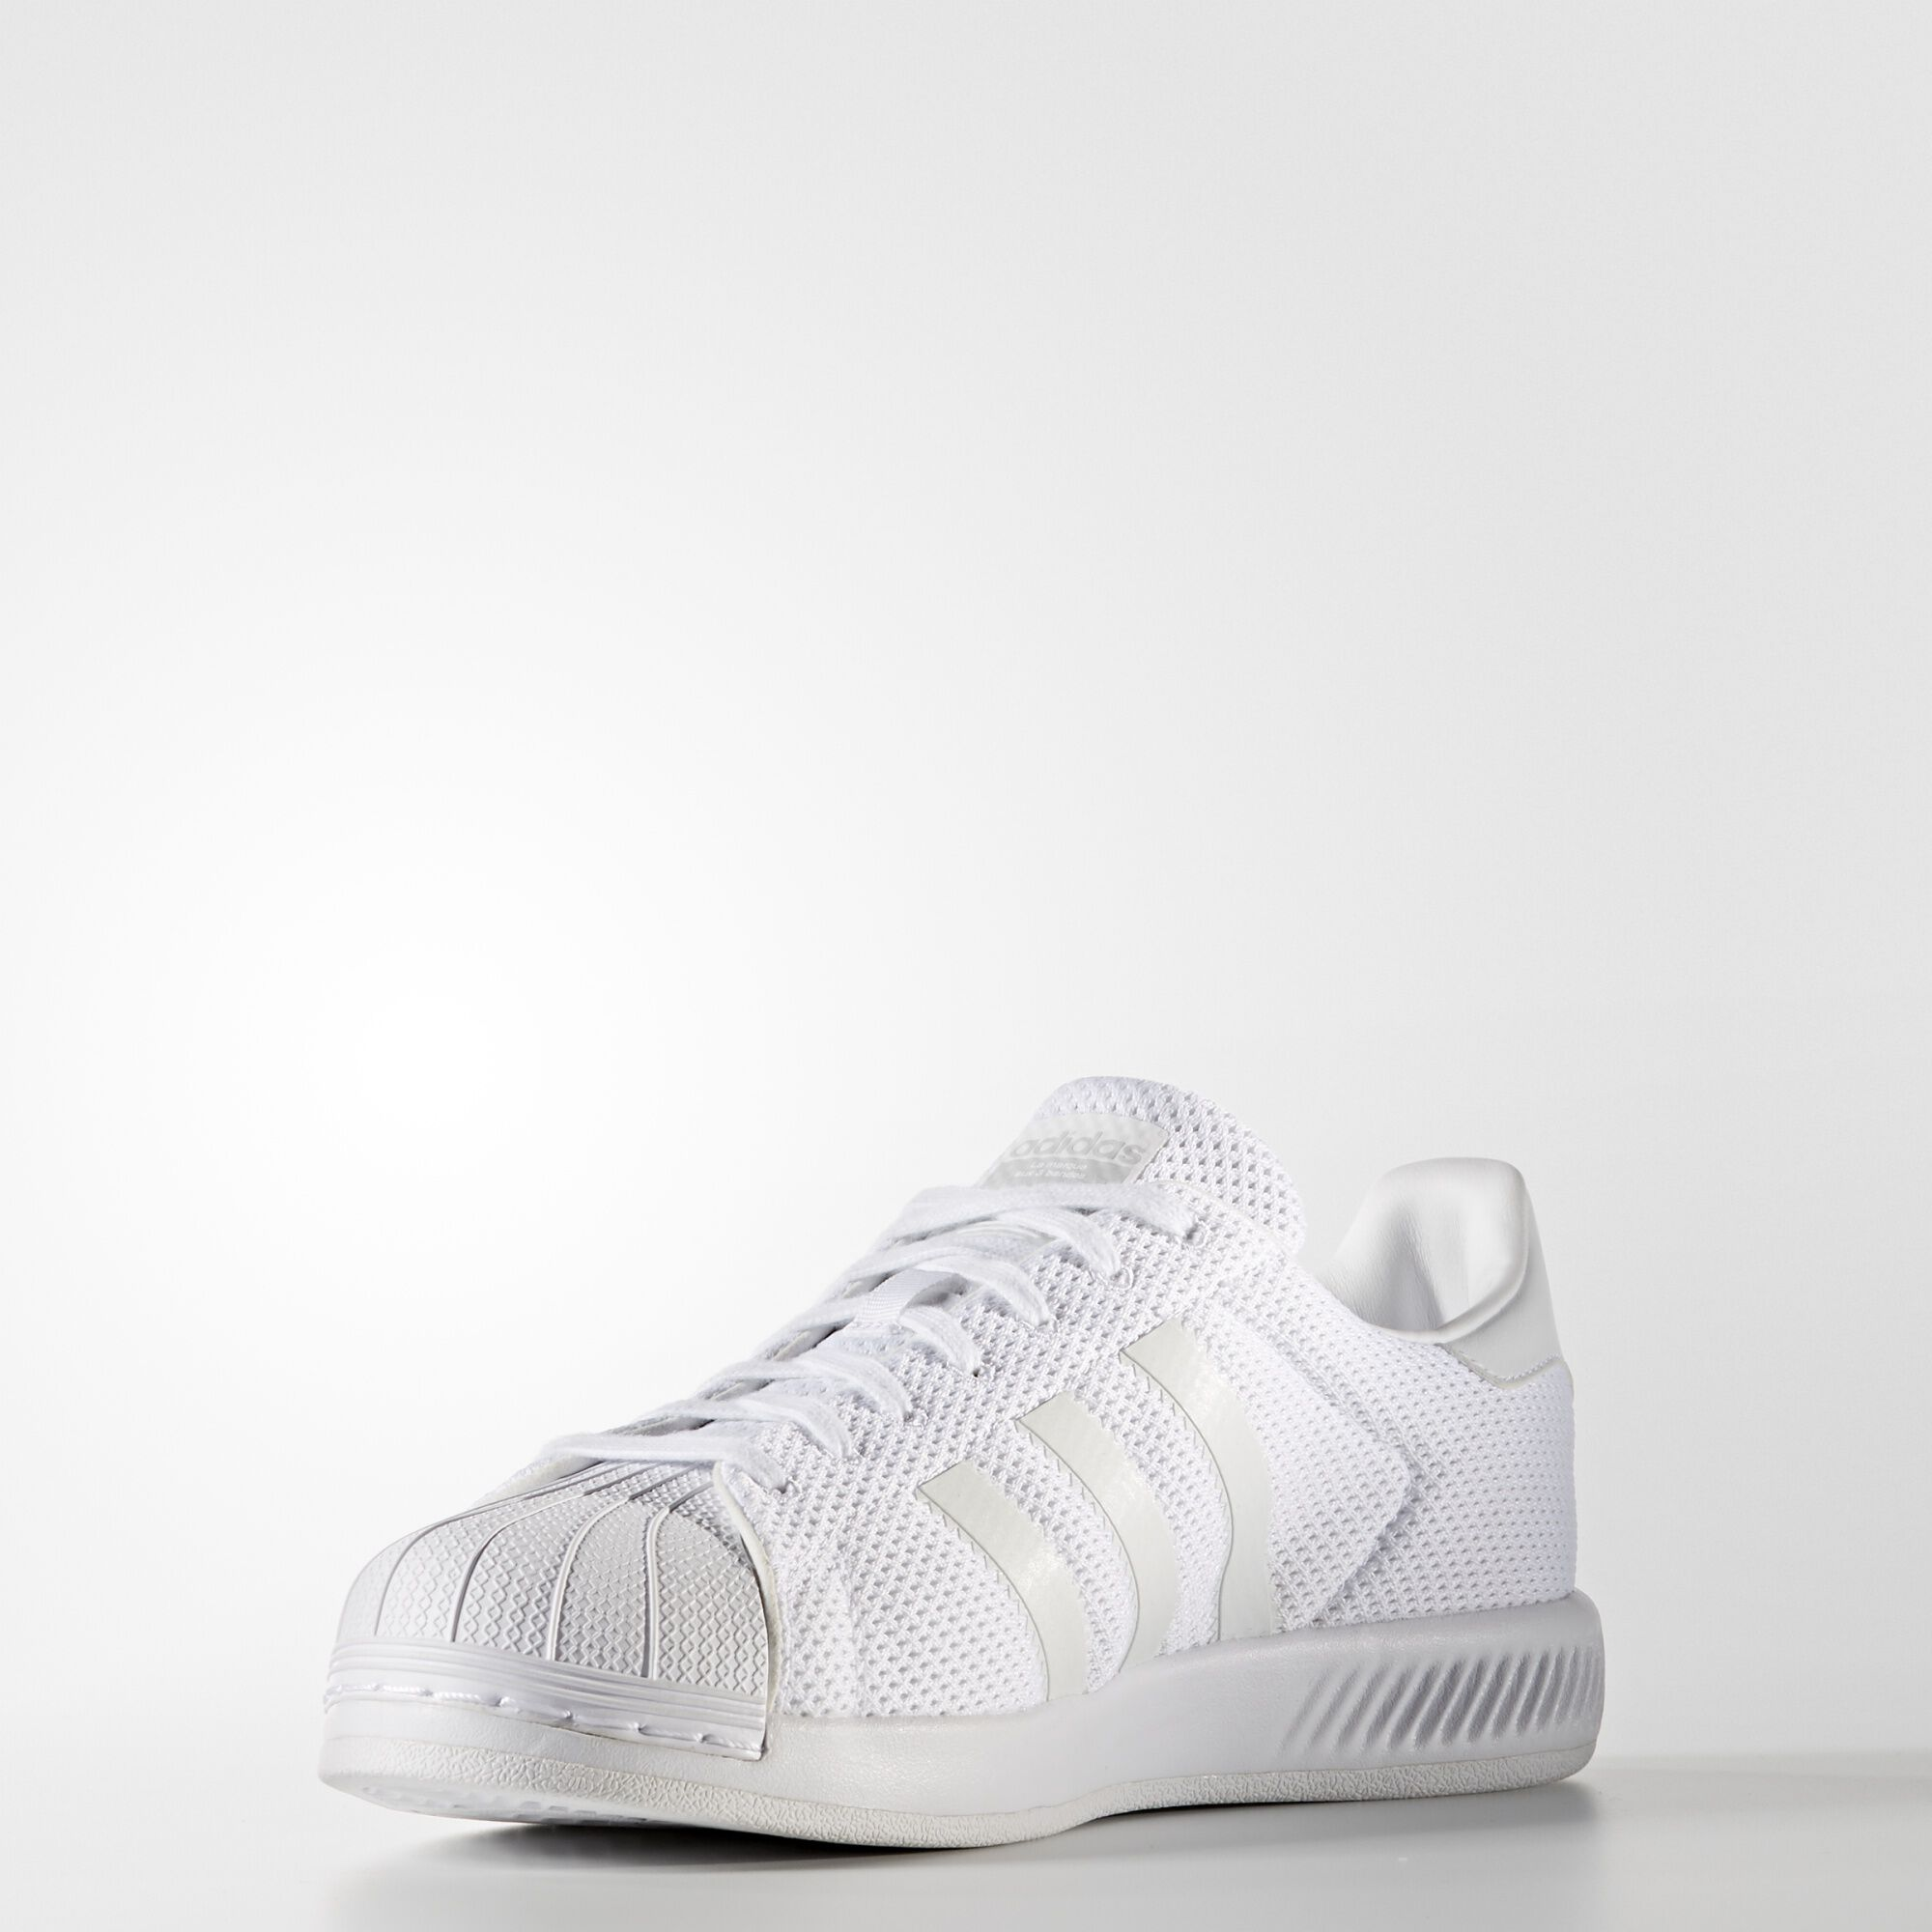 adidas - Superstar Shoes Running White Ftw  /  Running White Ftw  /  Running White Ftw S82236